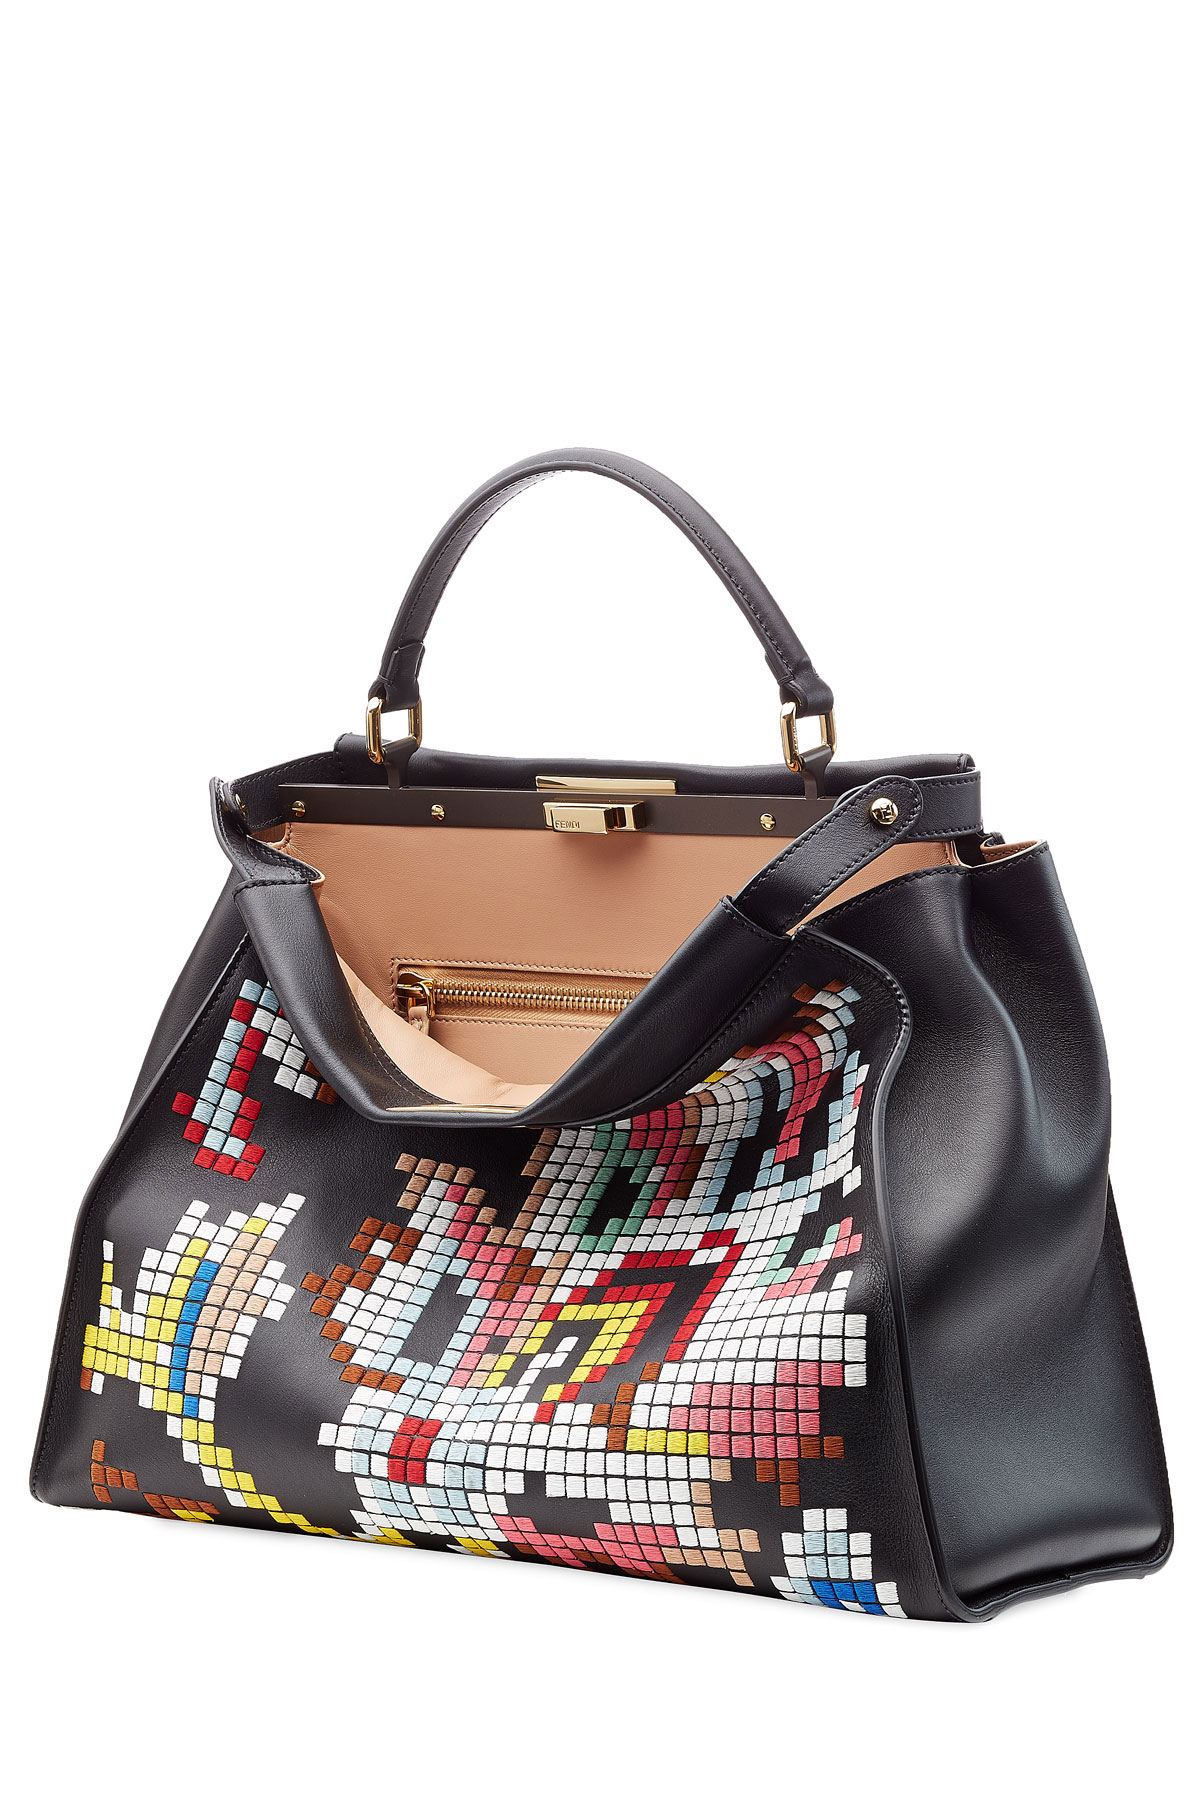 19aa134ebe9 Fendi Embroidered Peek-A-Boo Large Leather Tote in Black - Lyst